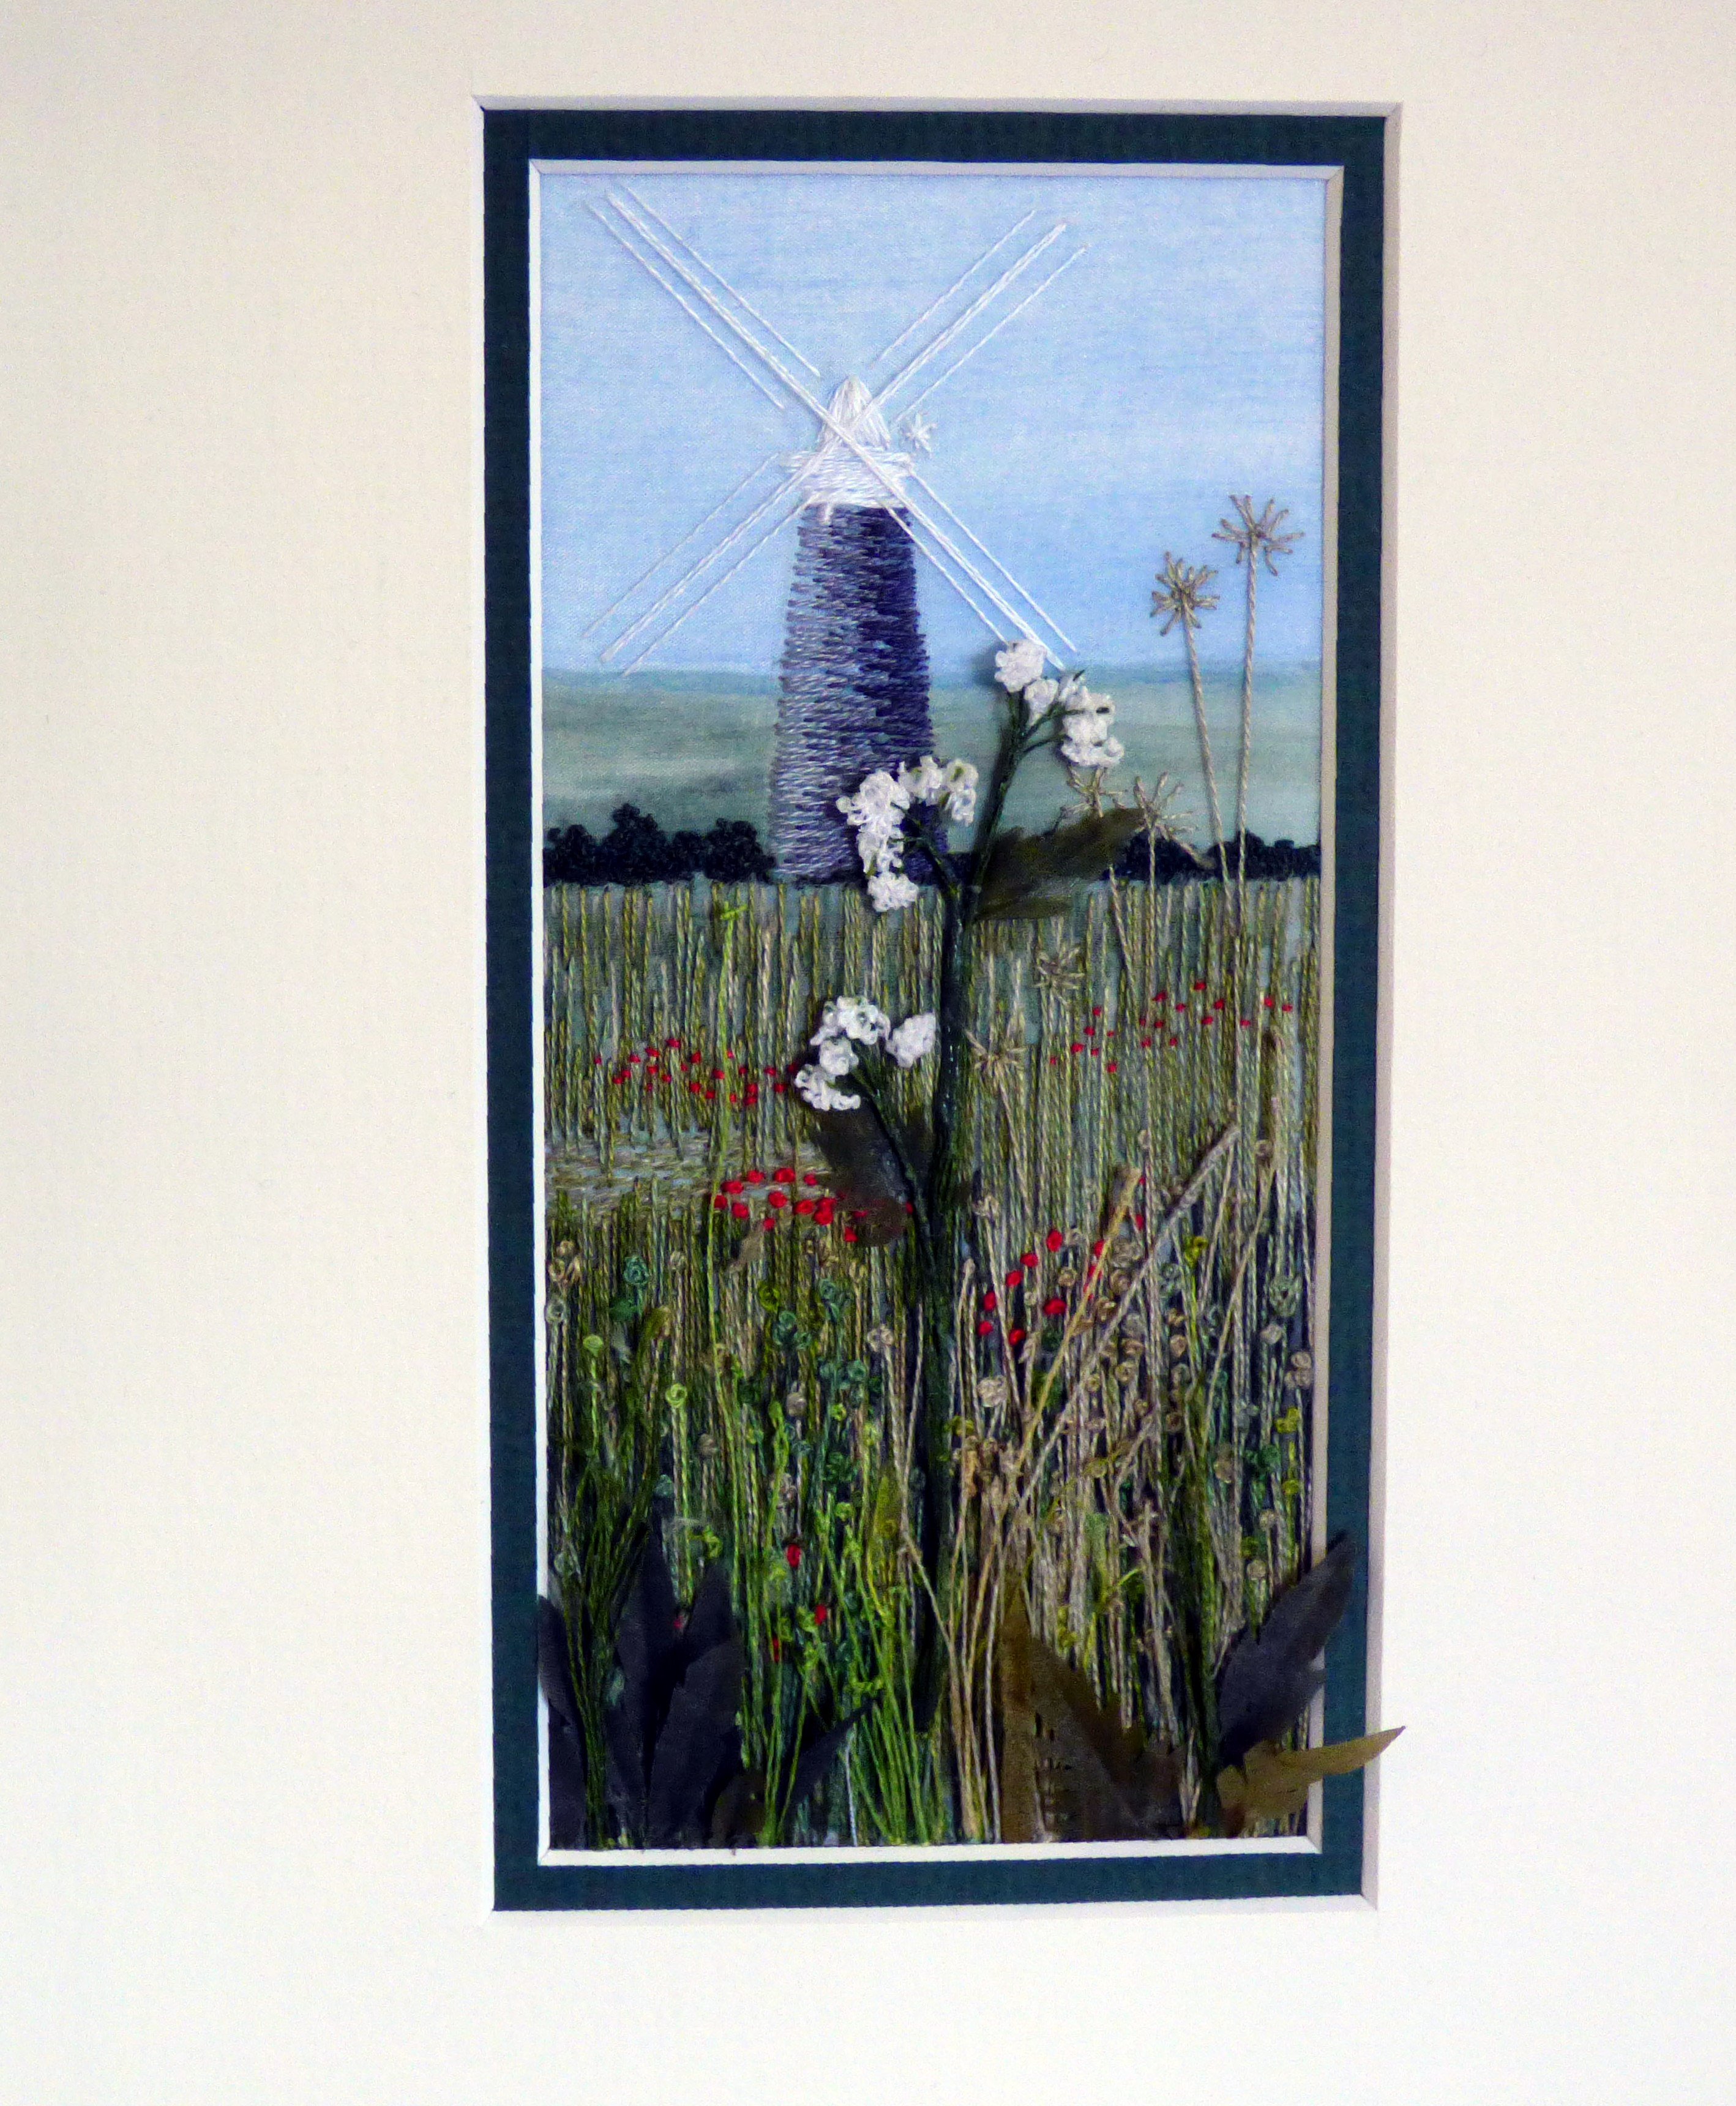 EAST ANGLICAN VIEW by Denise Sullivan, 2015, hand stitching on silk